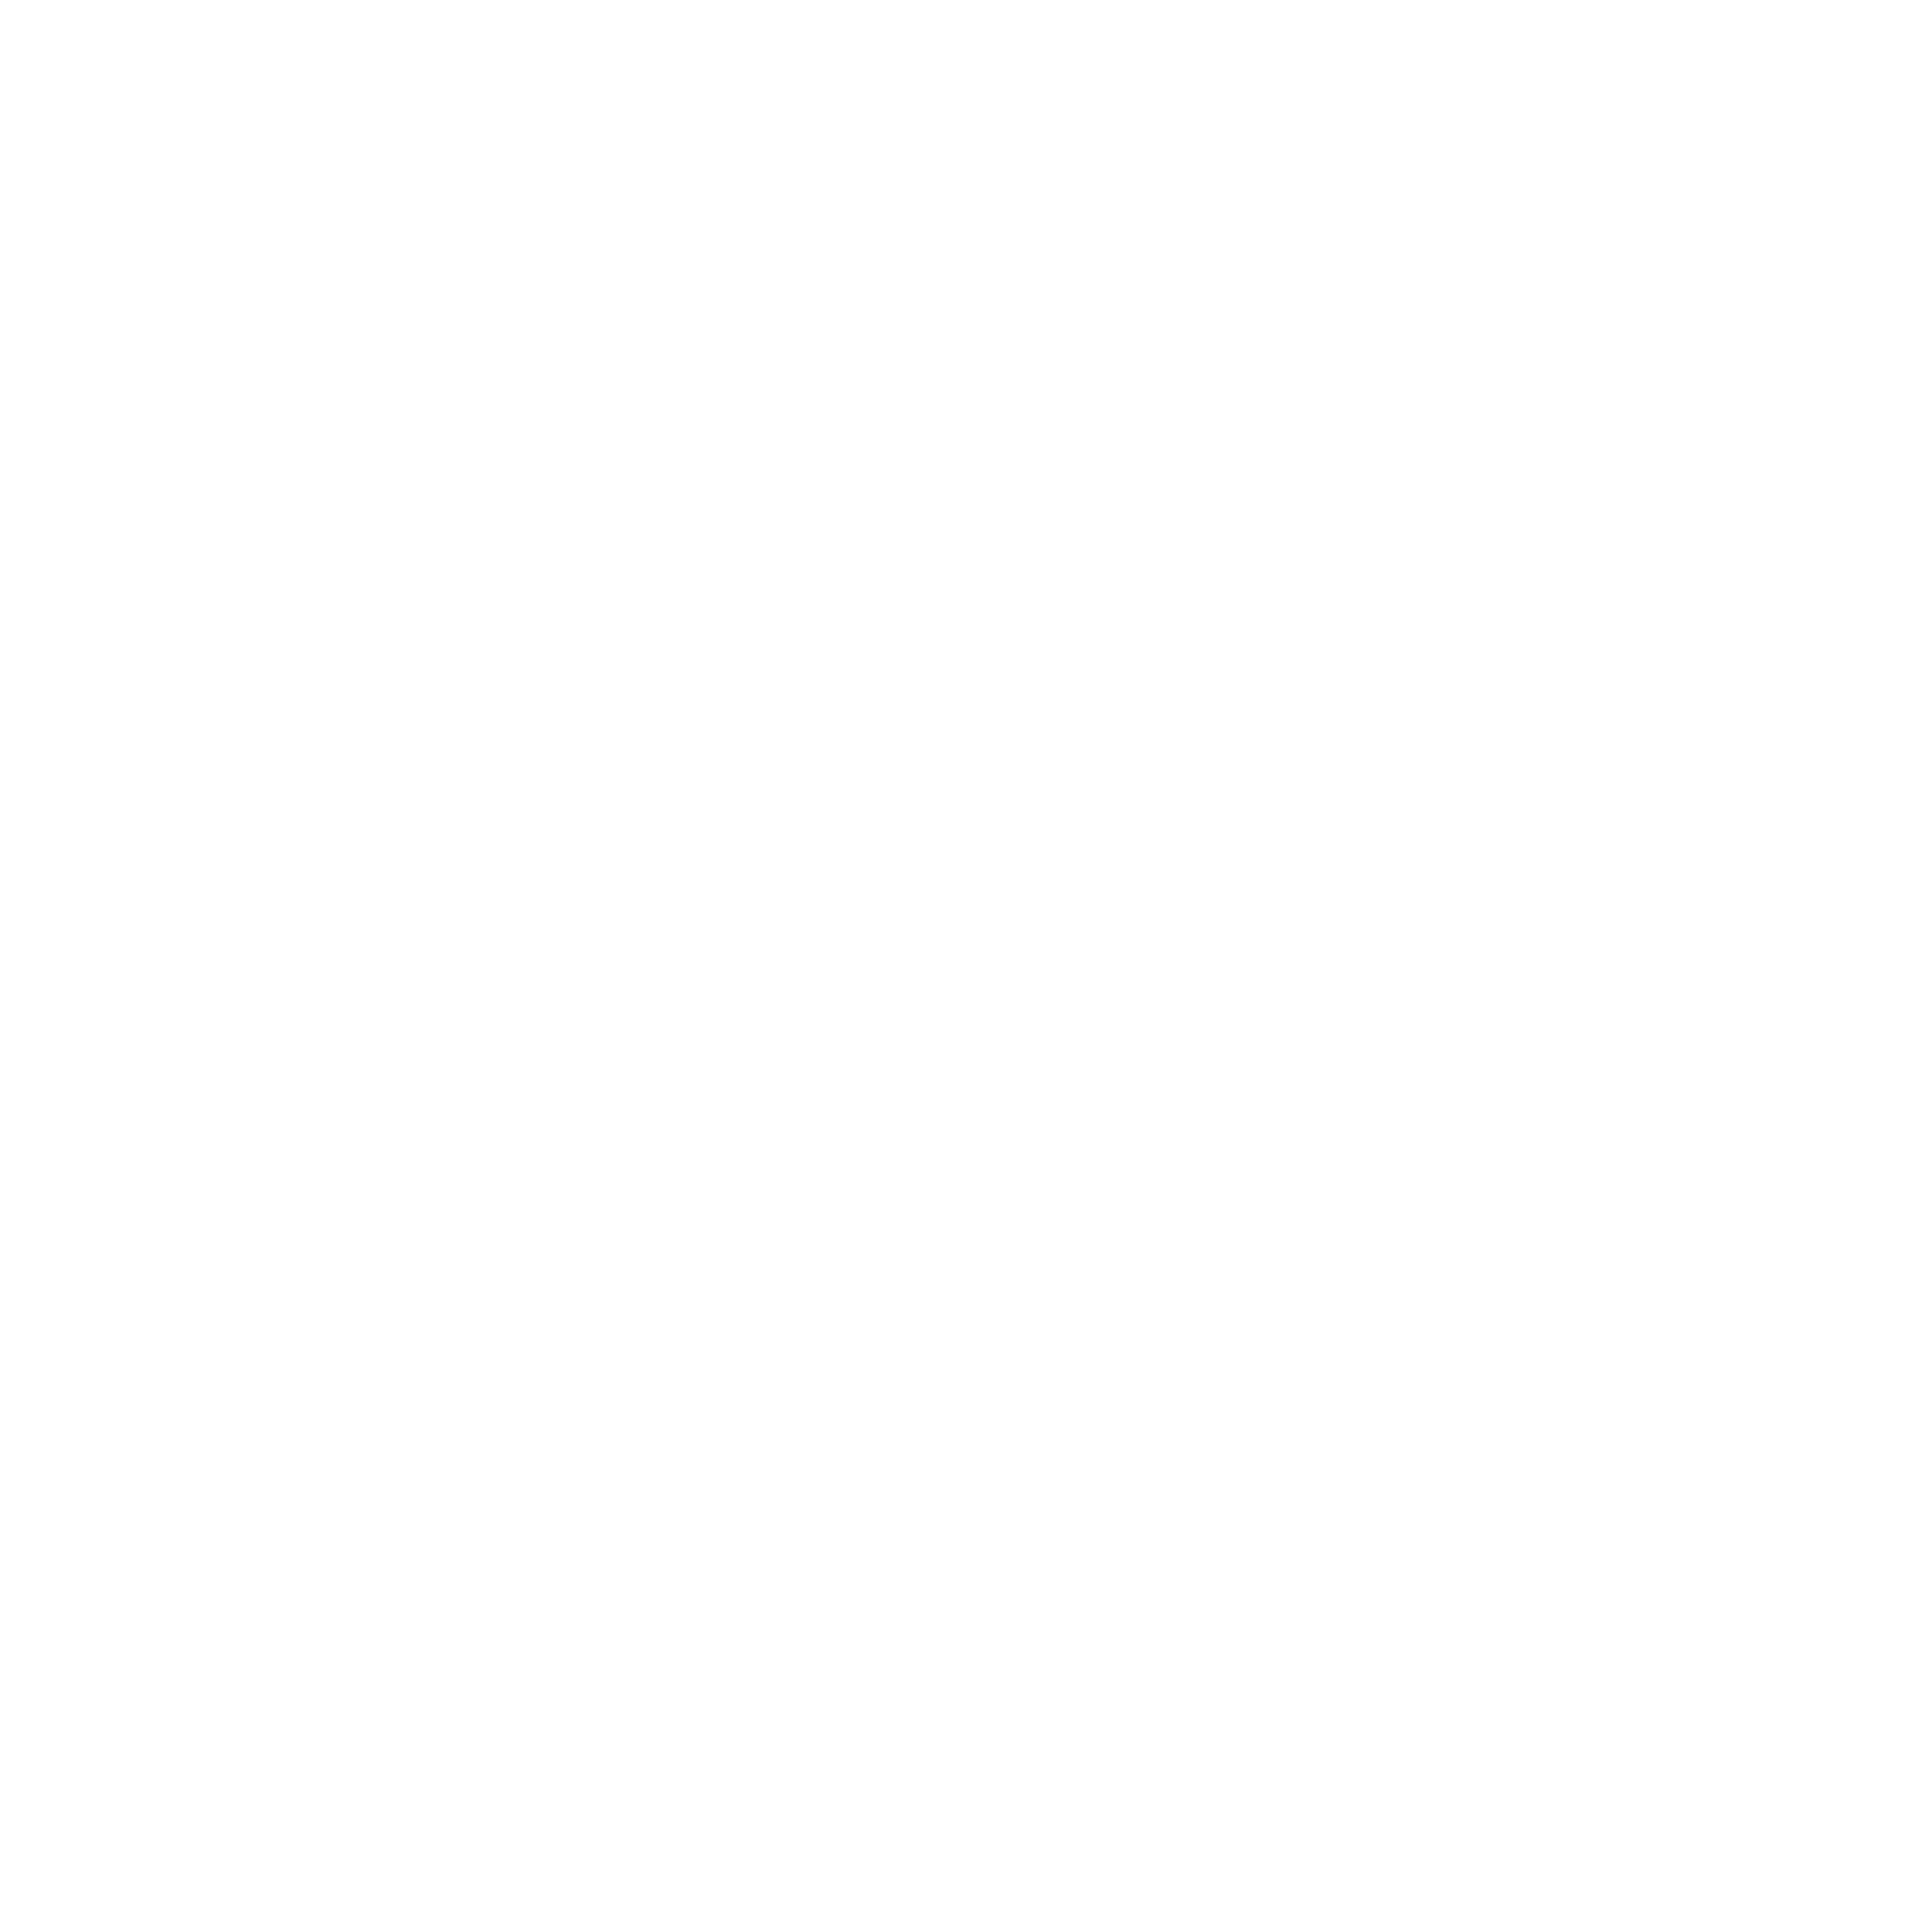 The Original Dolphin Watch